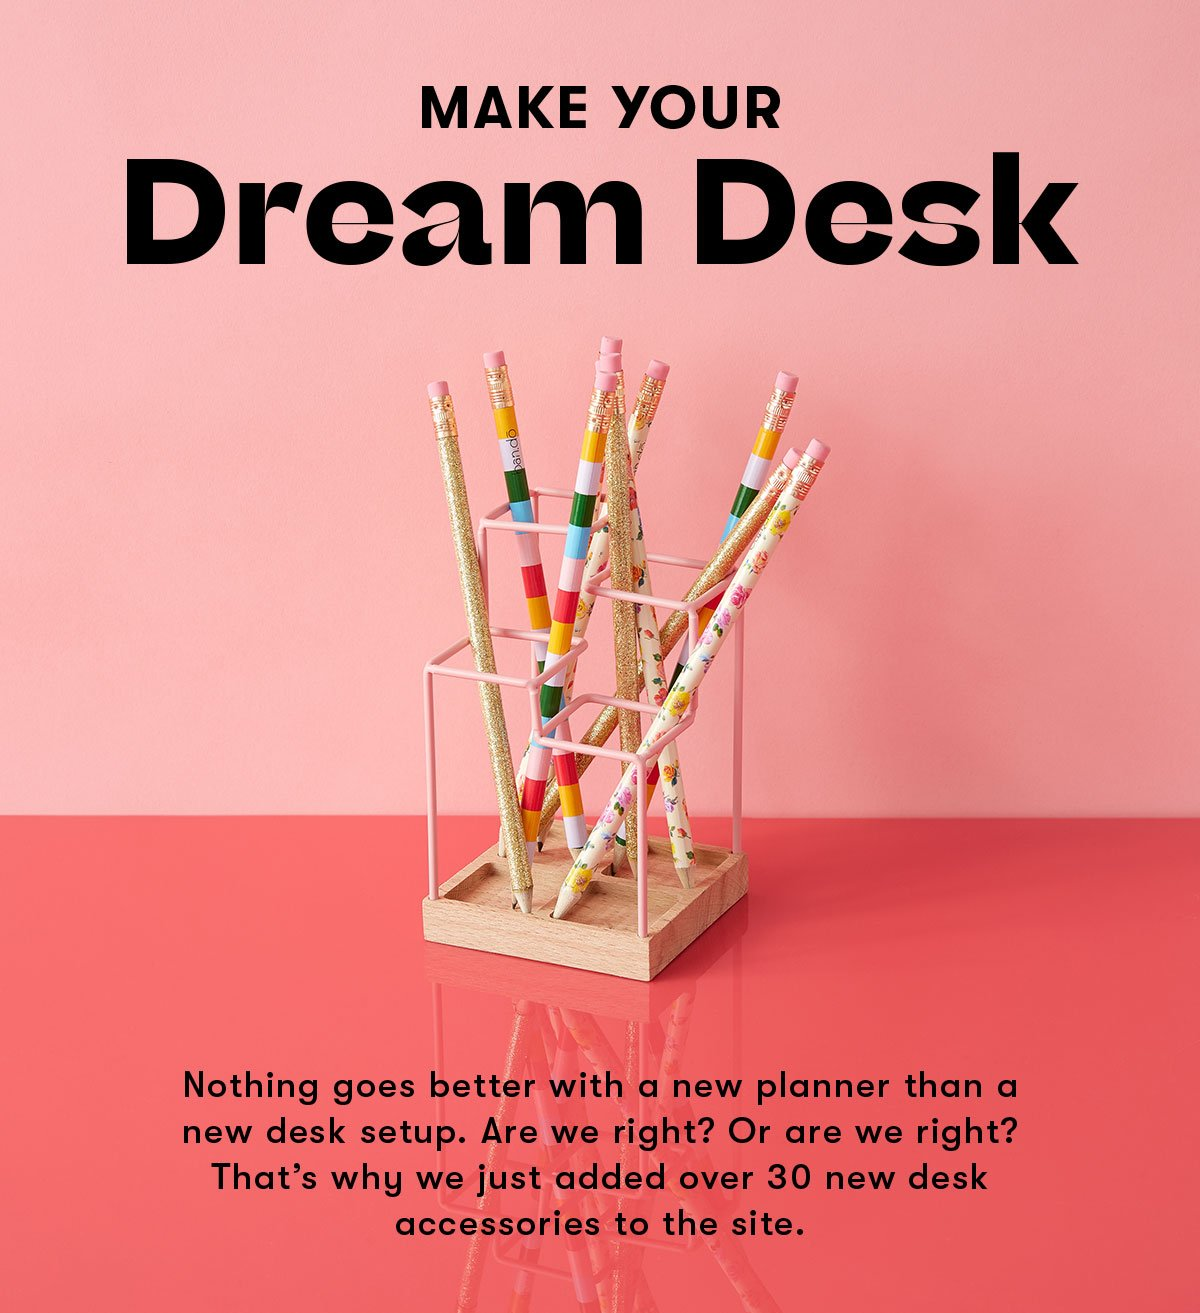 Make your dream desk